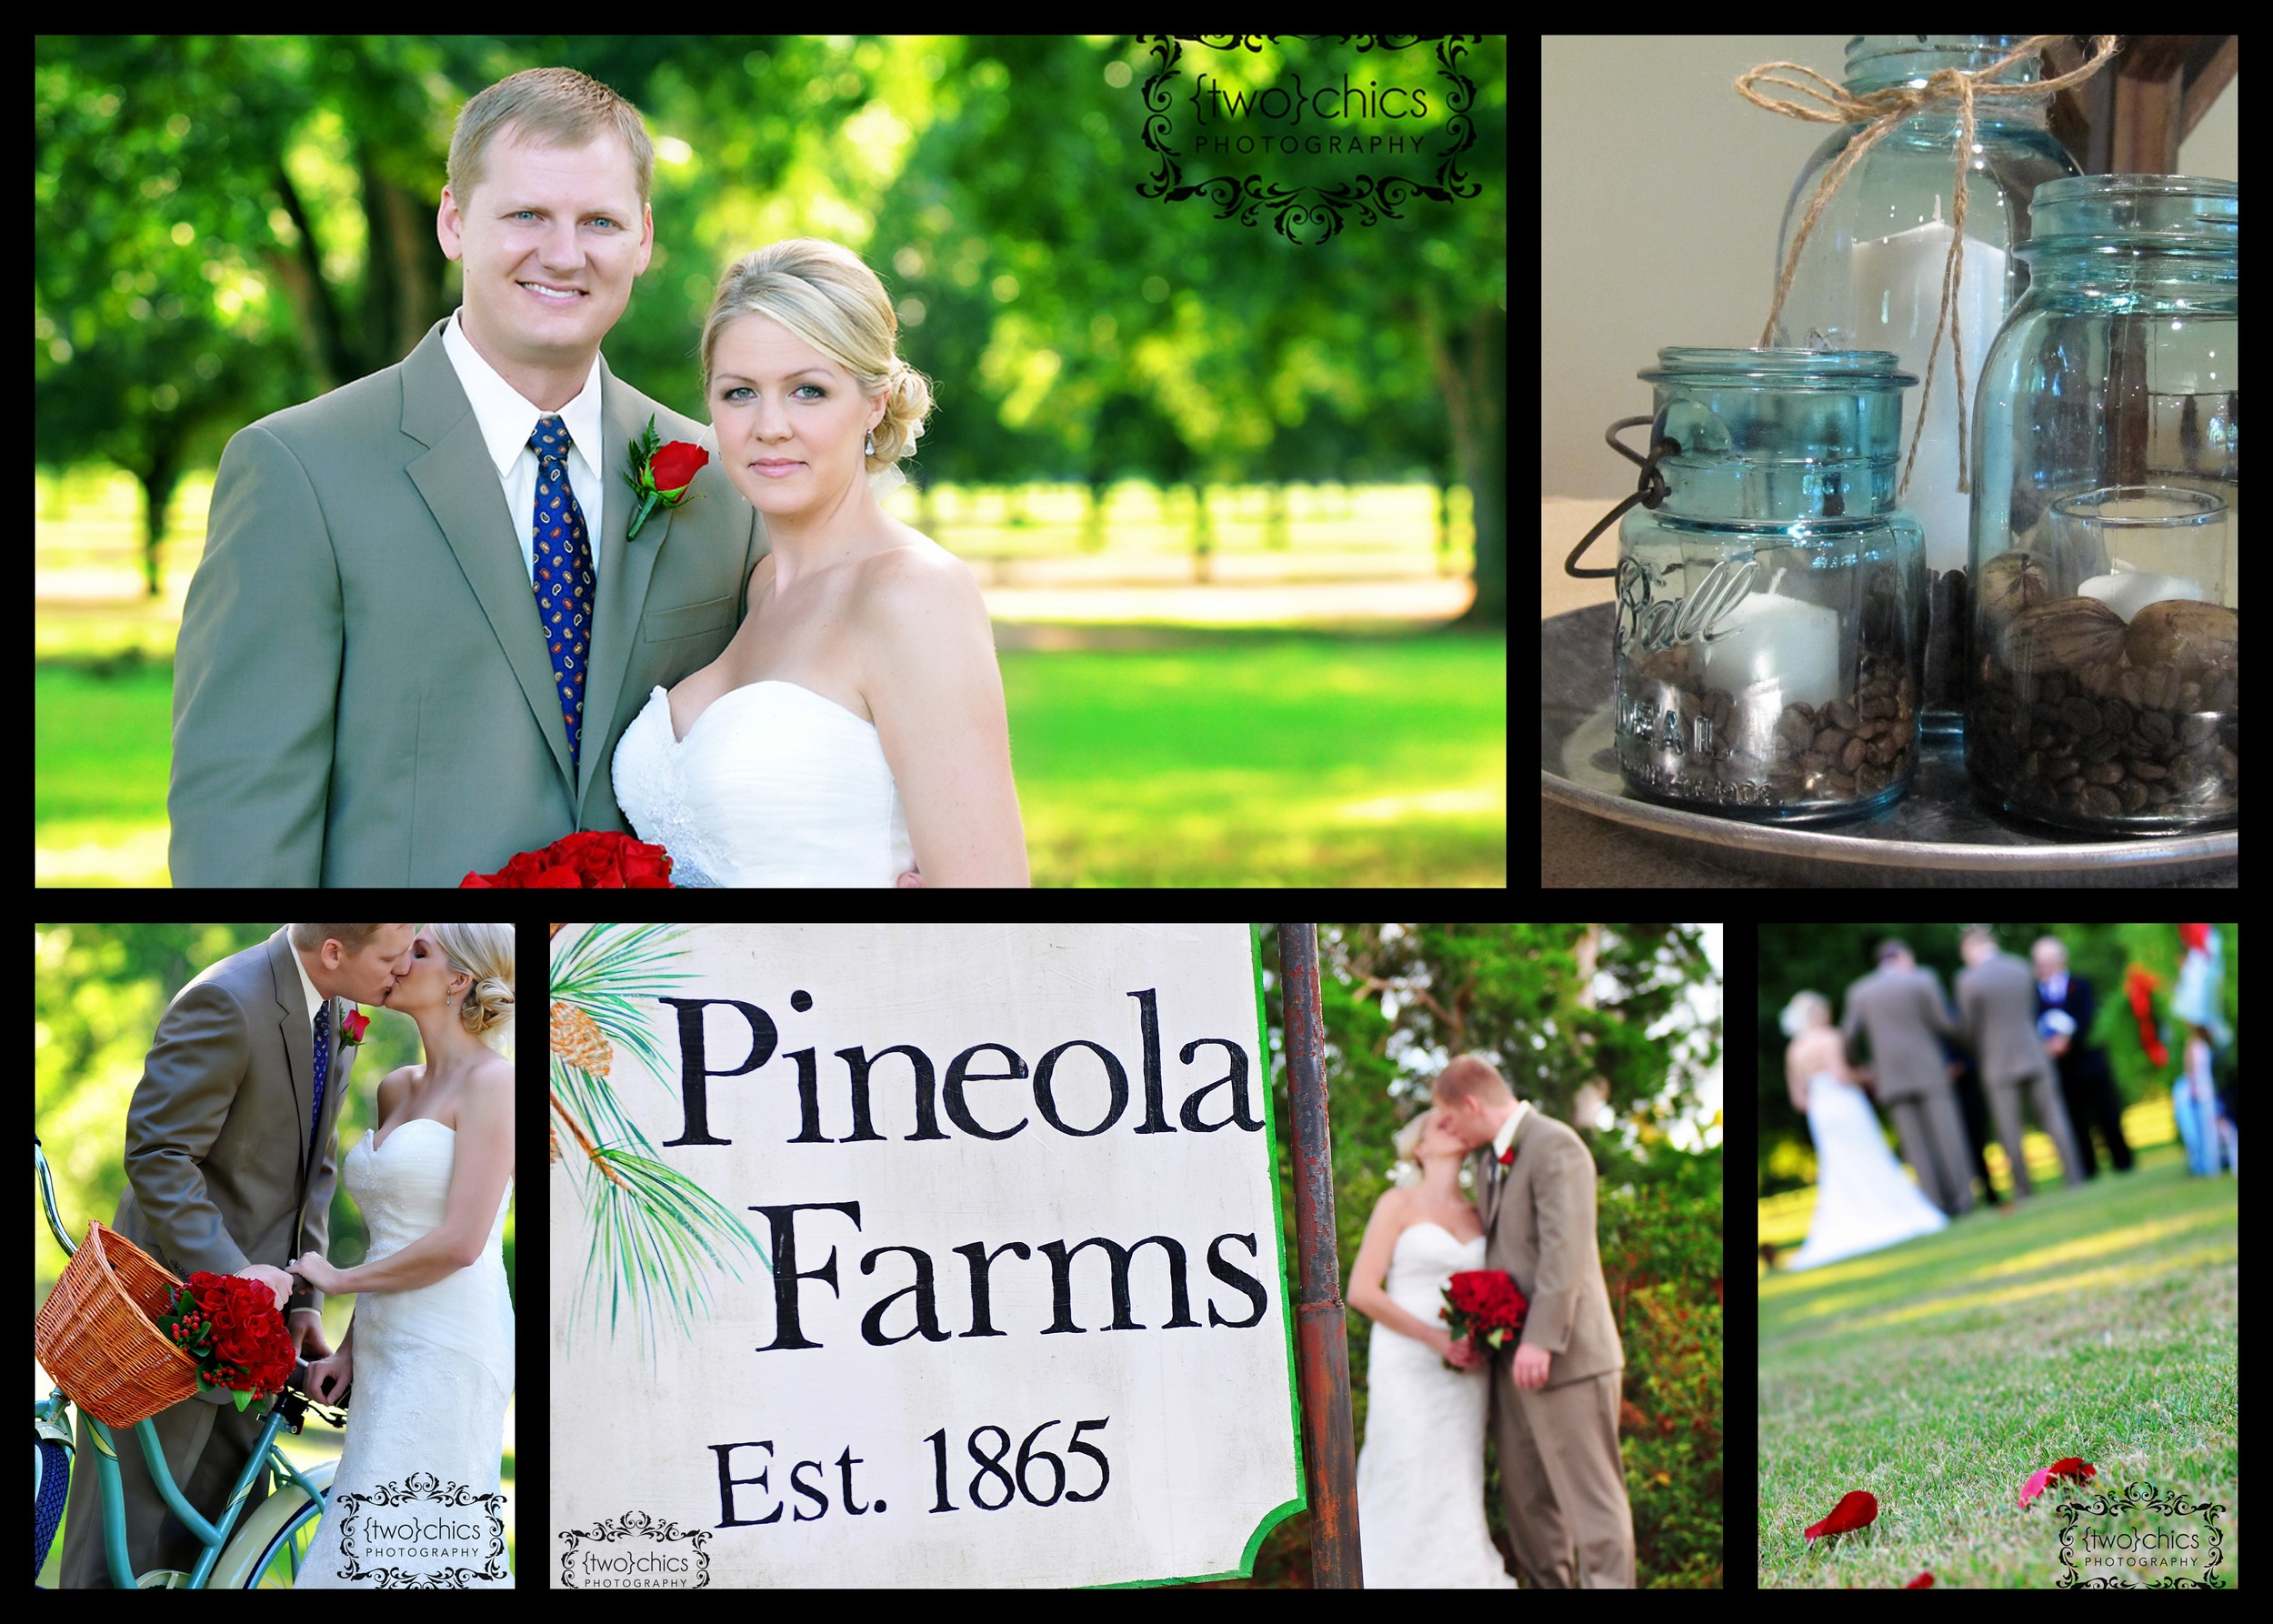 Pineola Farms Wedding September 4, 2010